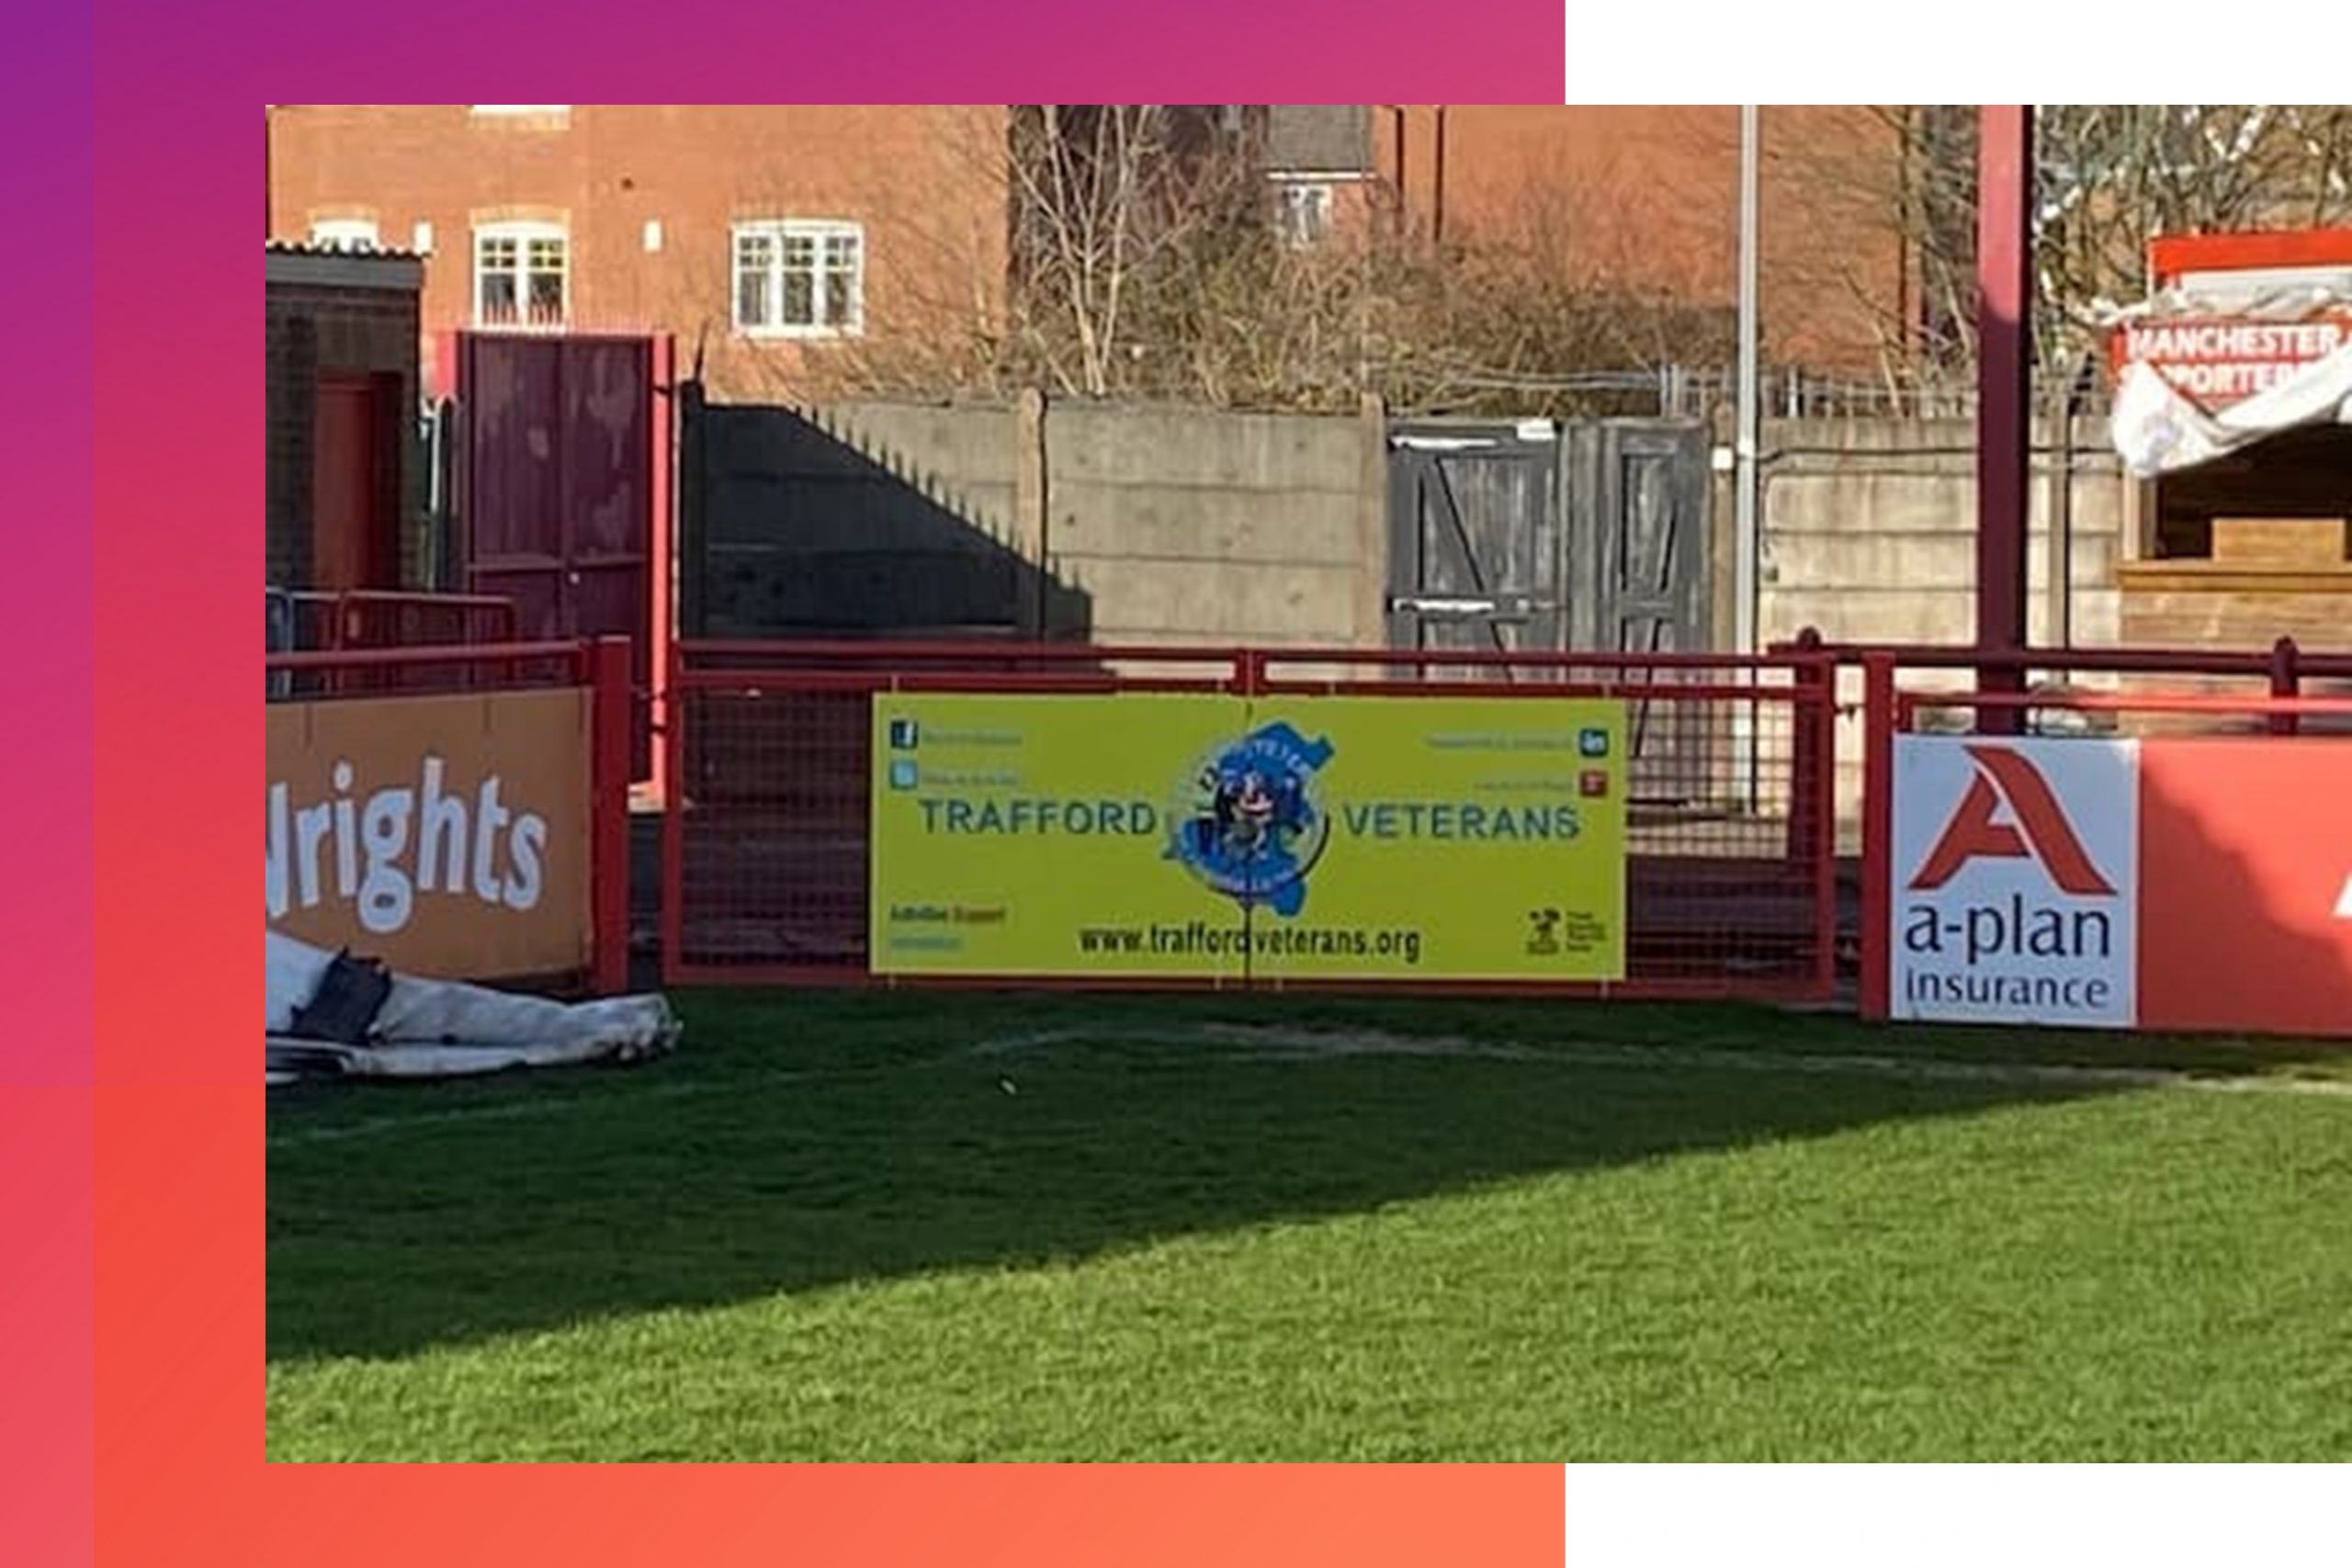 Altrincham Football Club Advertising sign